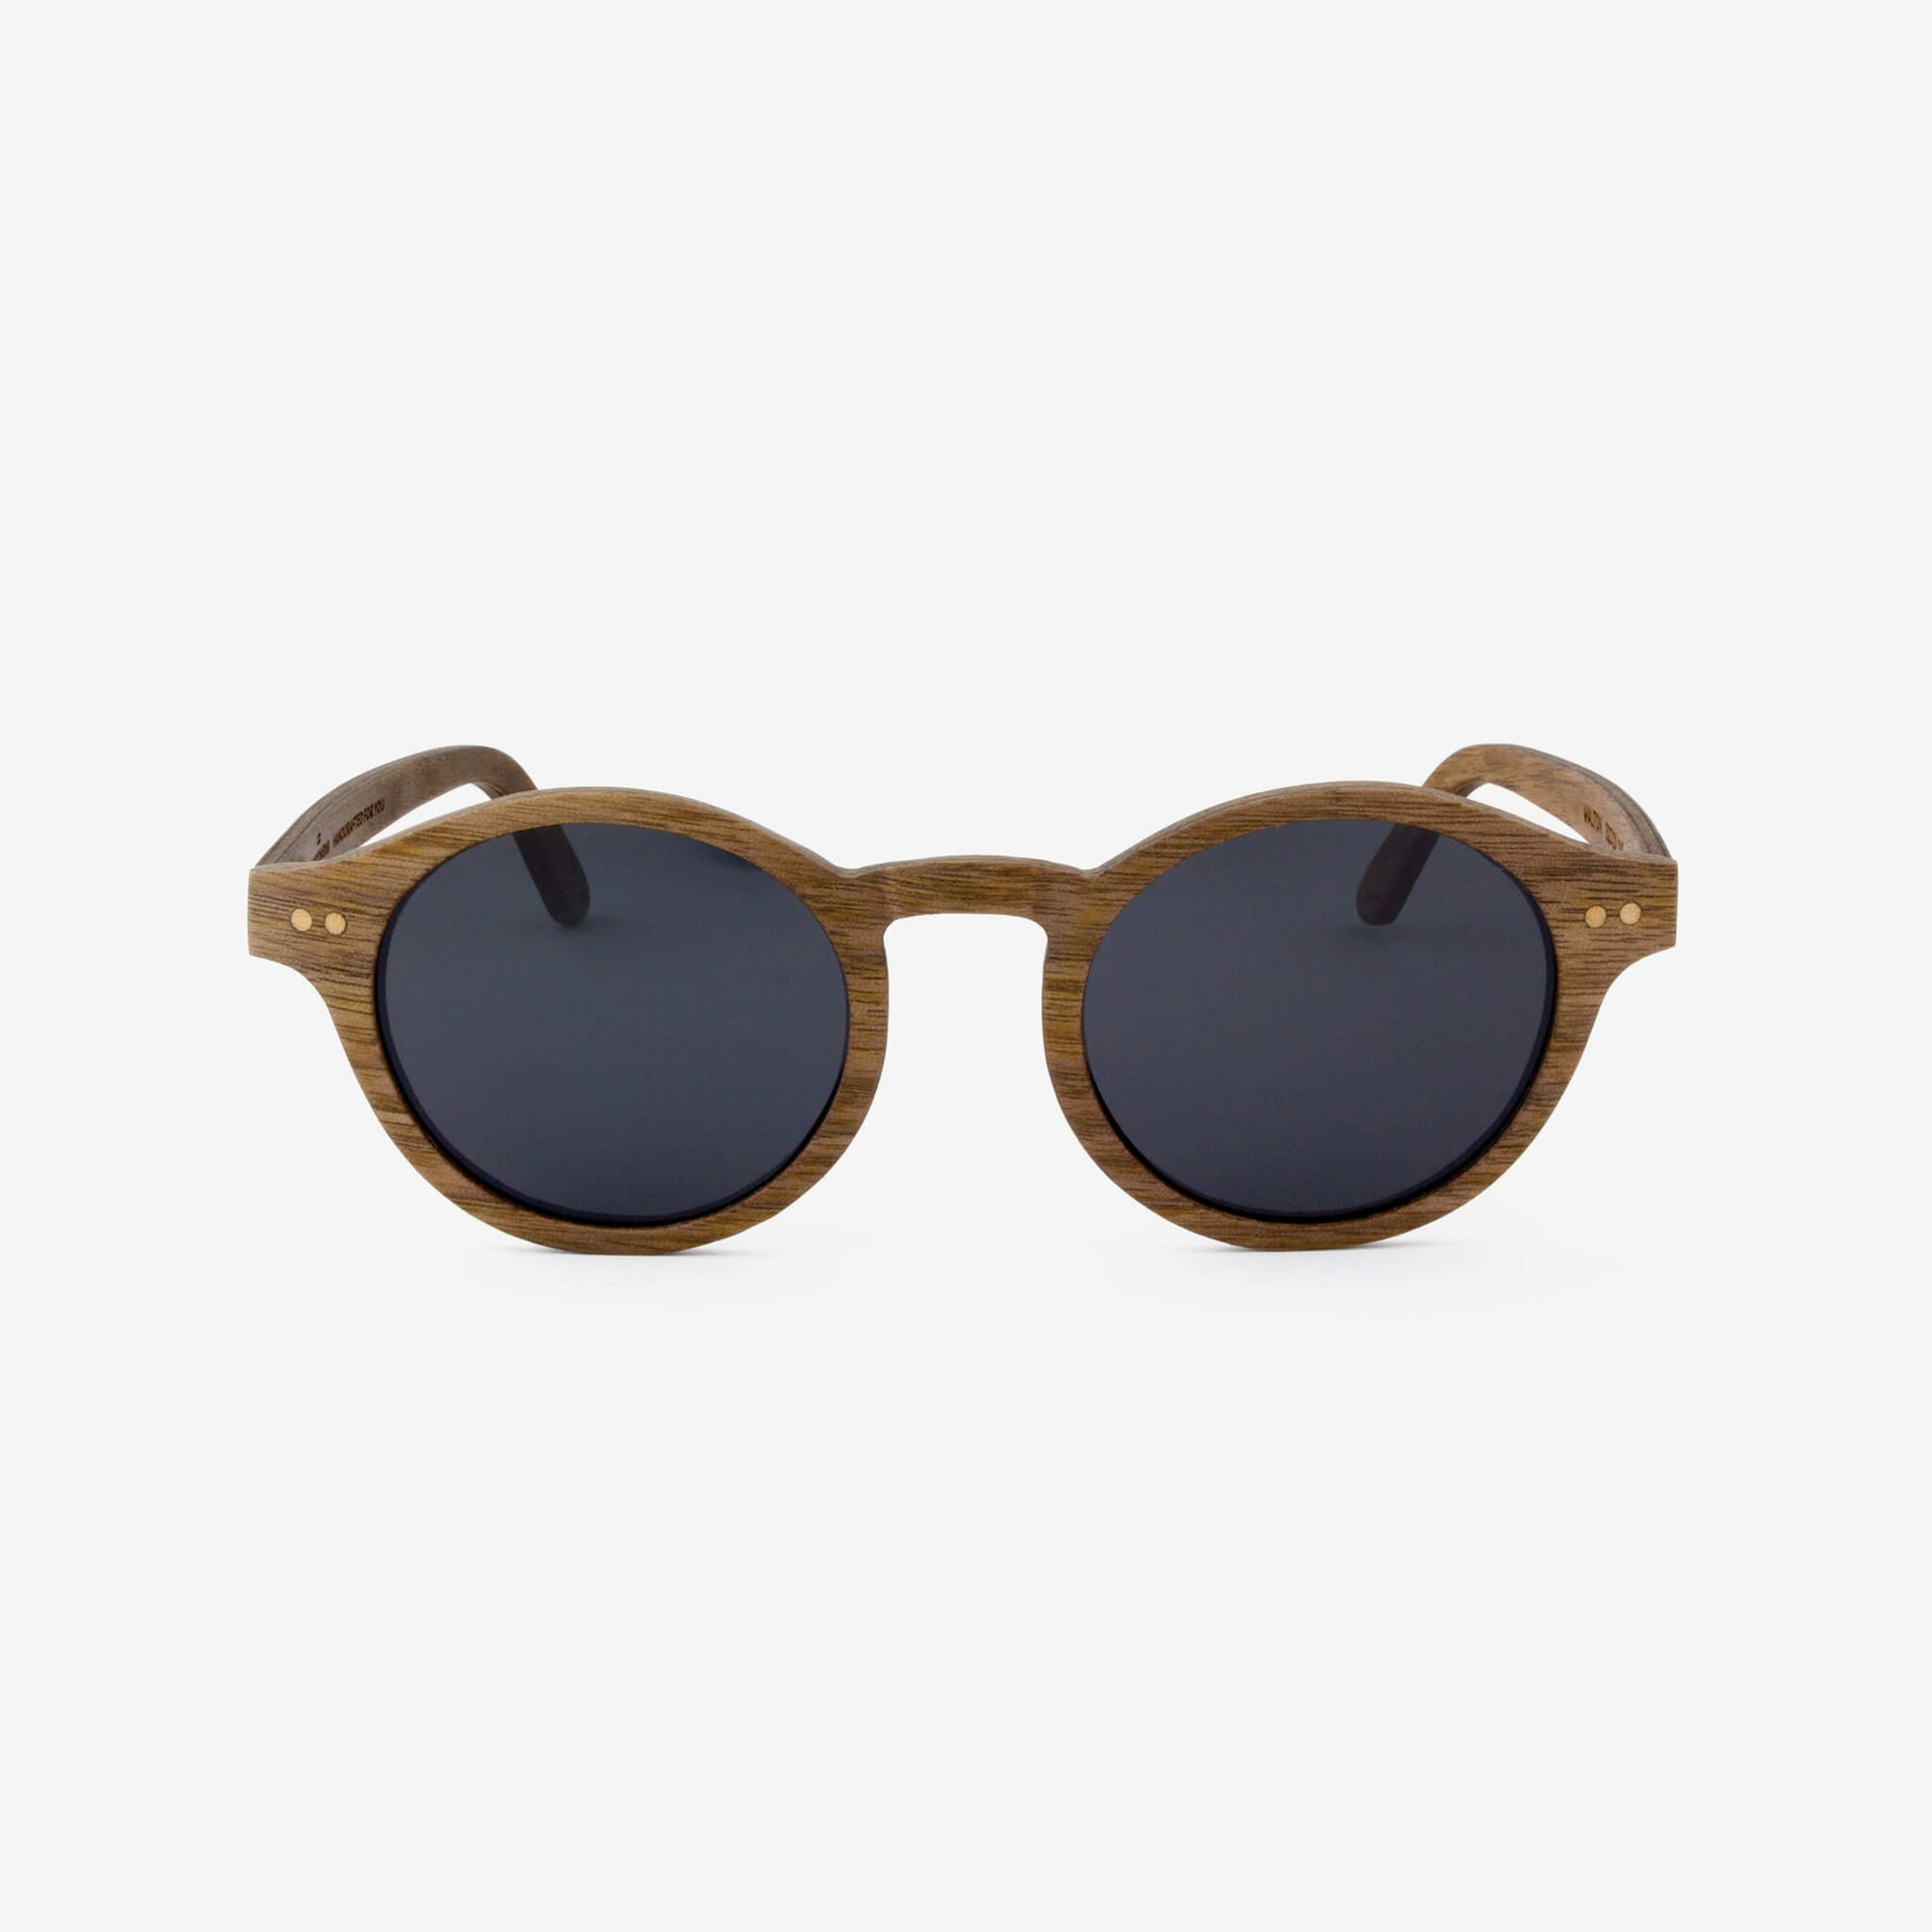 Walton round black walnut adjustable wood sunglasses